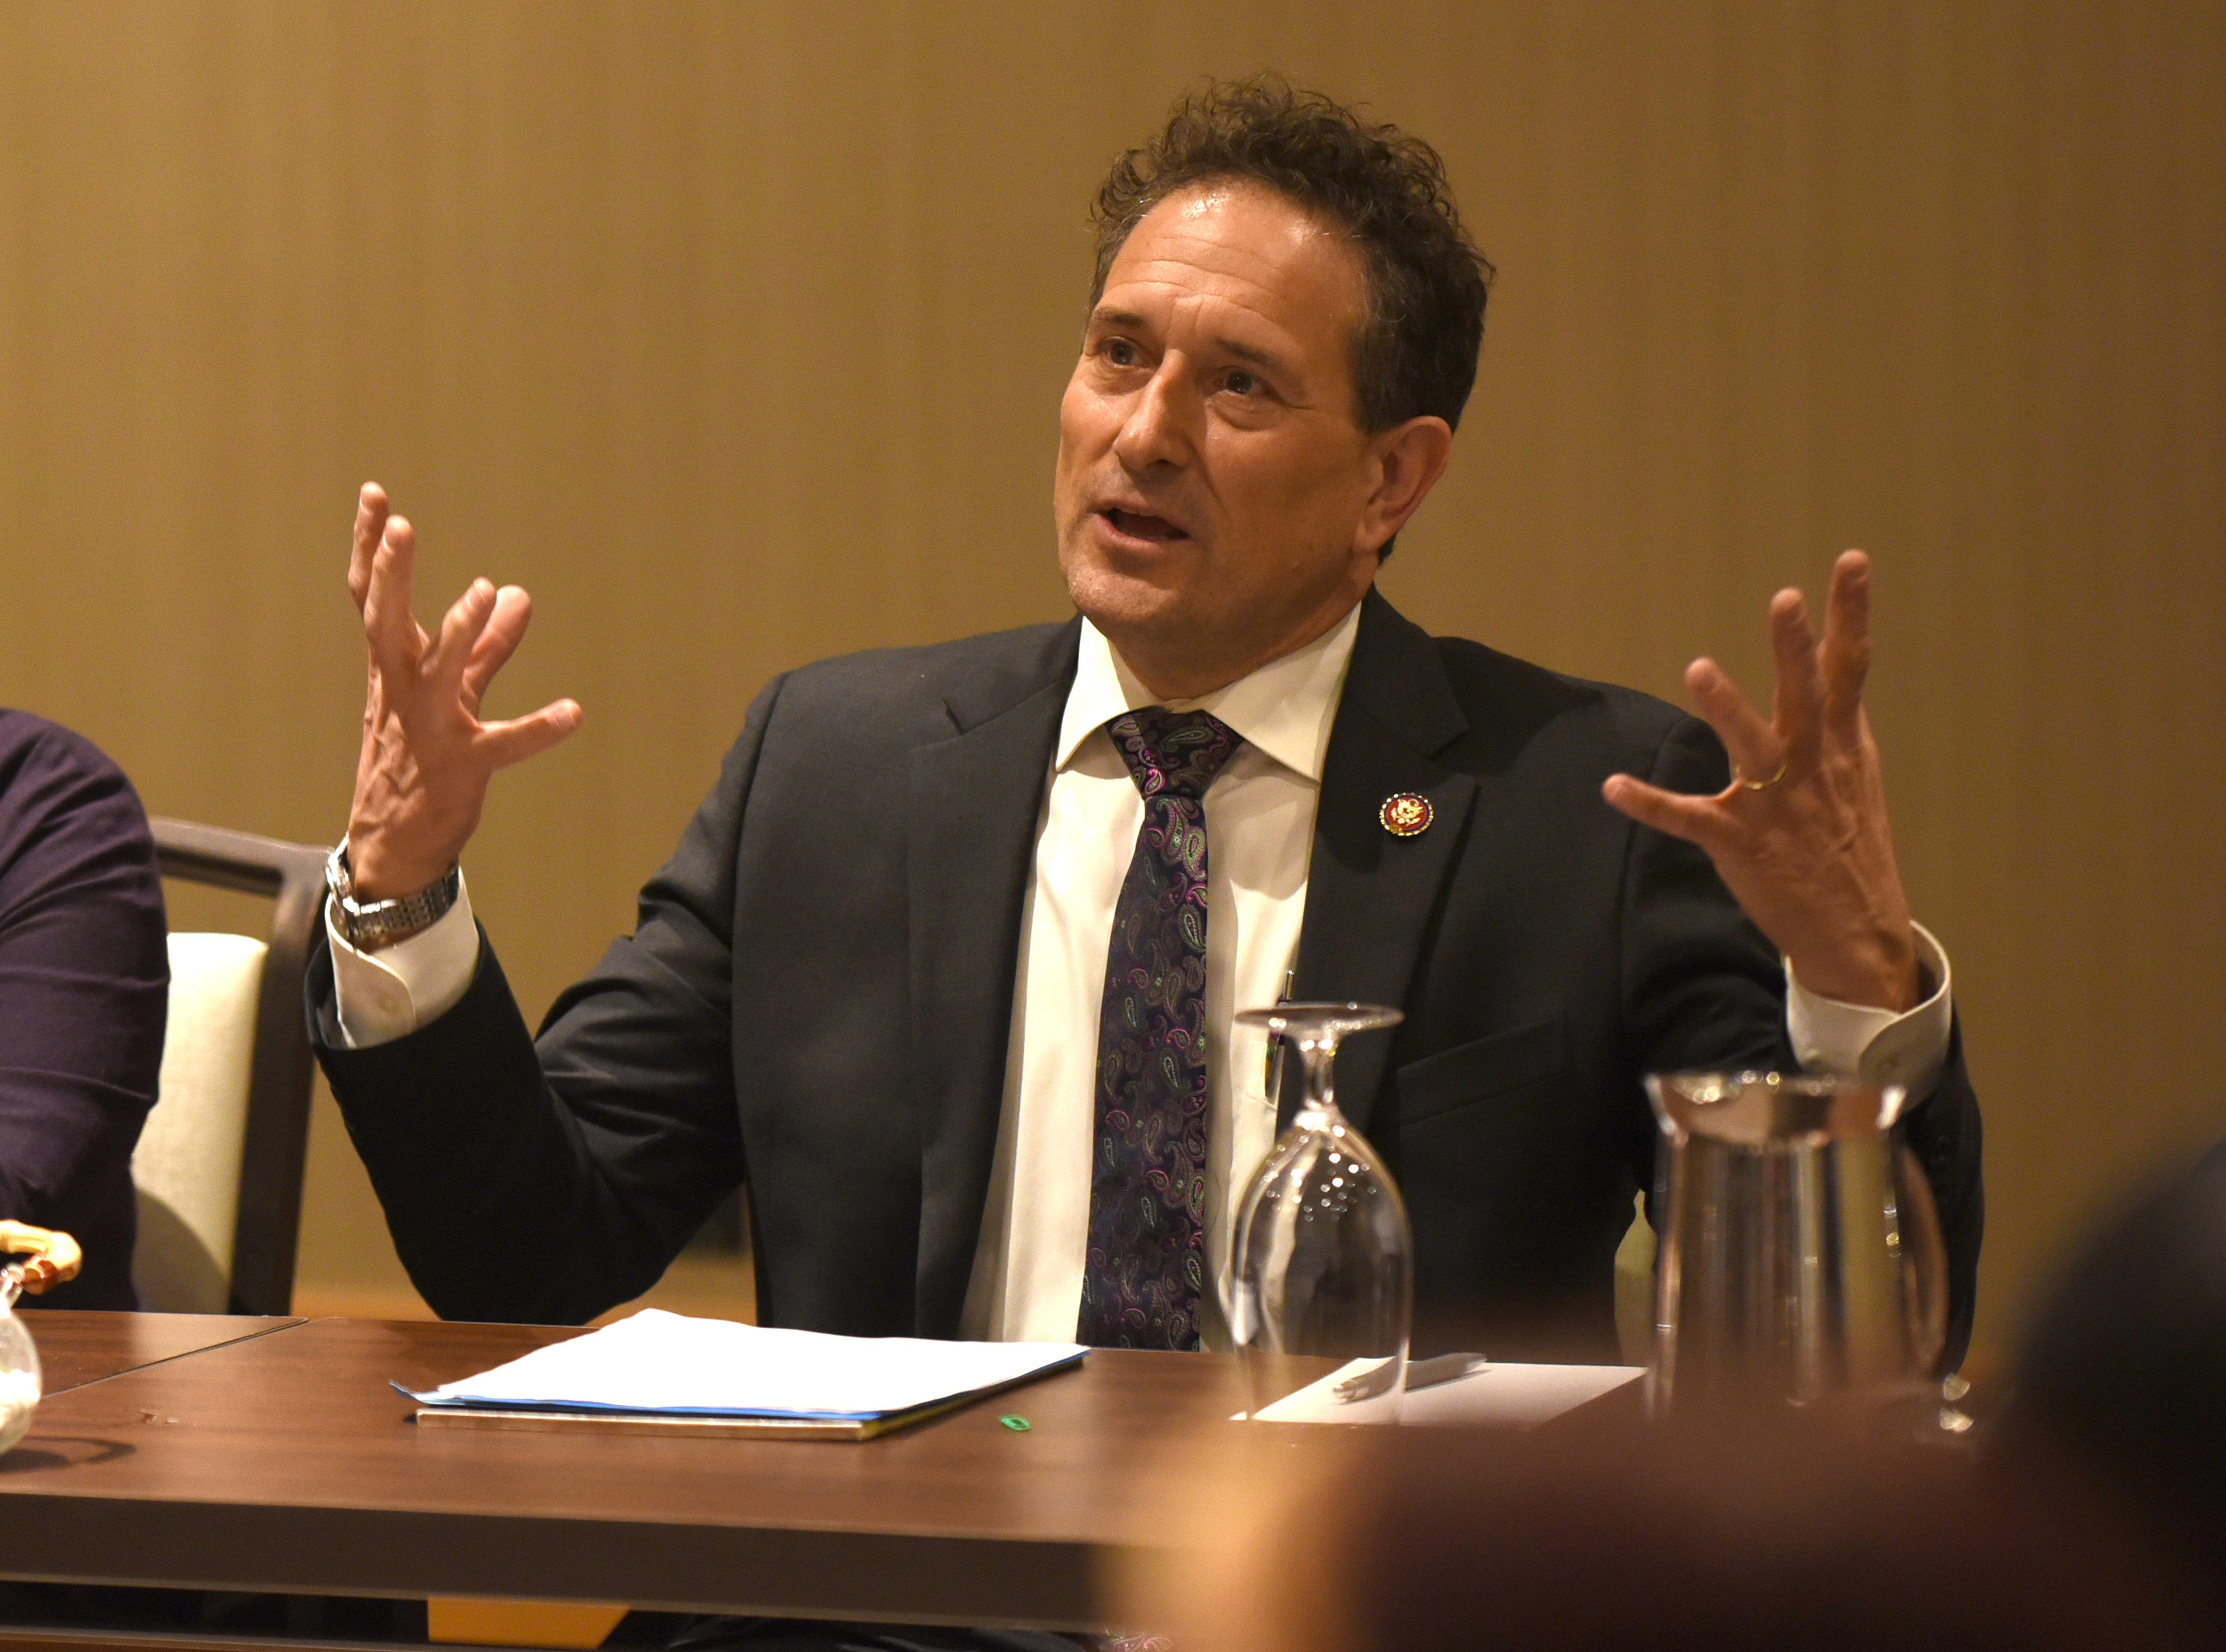 Rep. Andy Levin proposes pathway to two-state solution in Israeli-Palestinian conflict